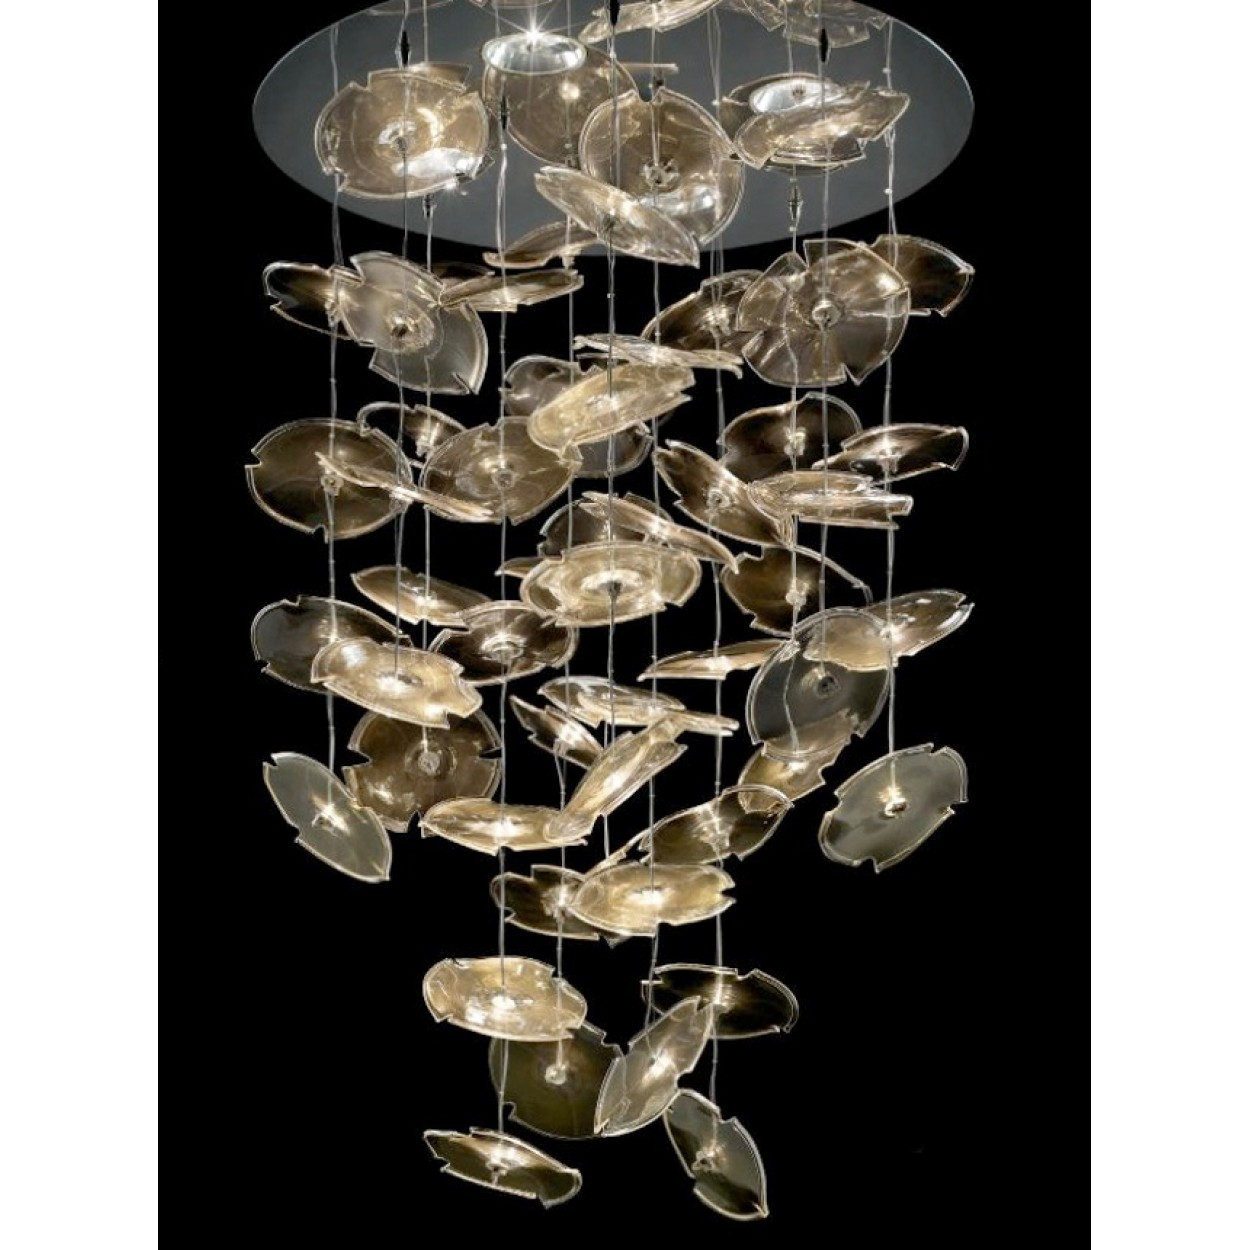 CUSTOM SIZE CONTEMPORARY LIGHTING FIXTURE